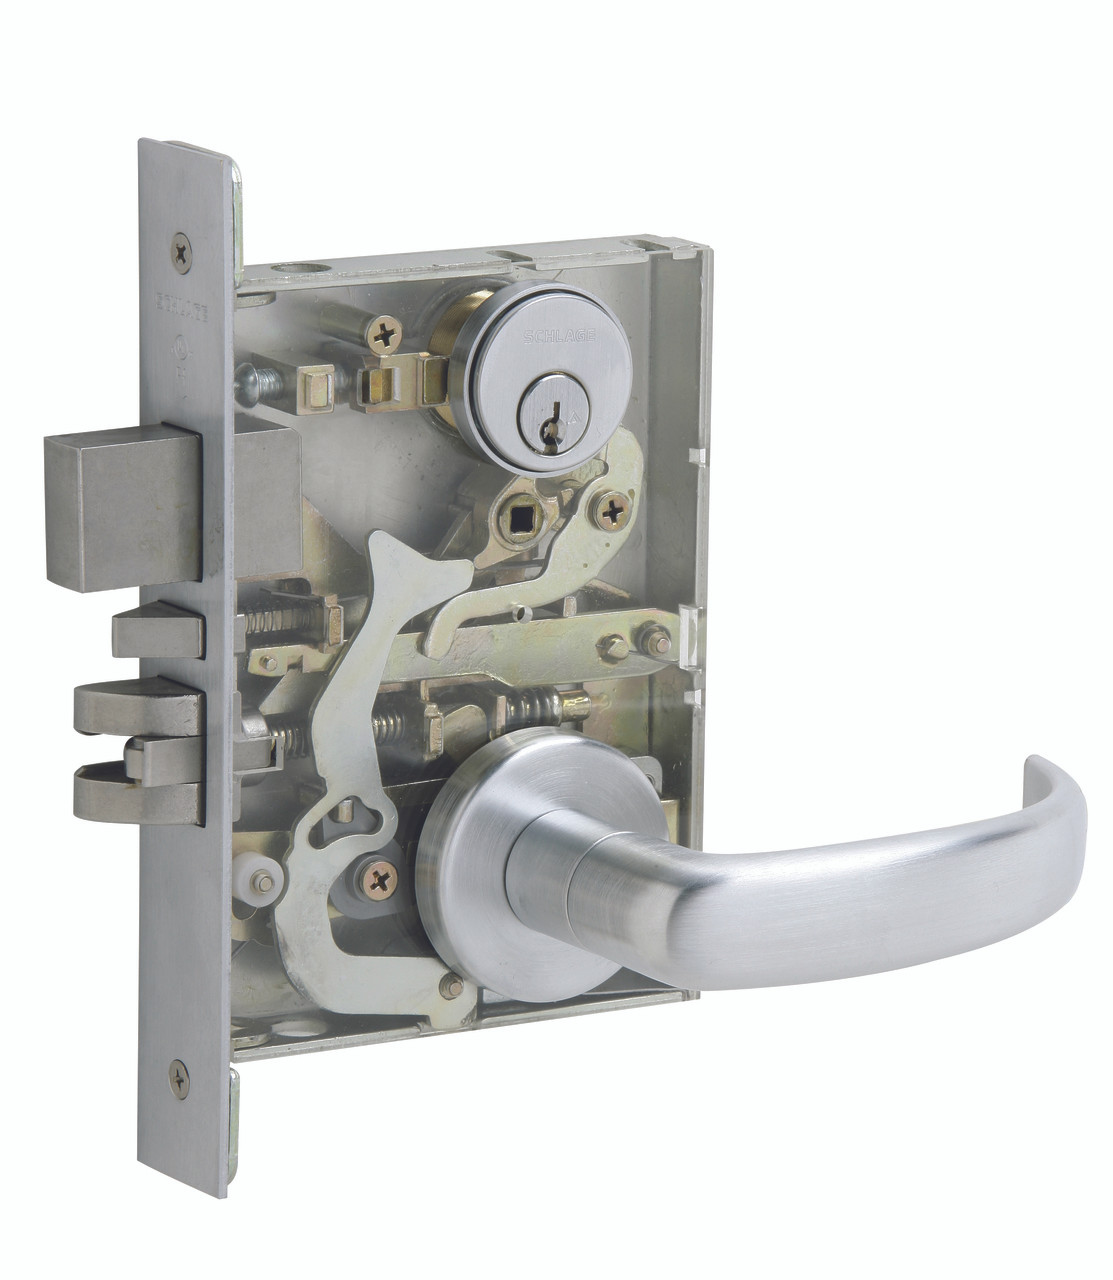 Schlage mortise lock template gallery template design ideas for Schlage mortise lock template